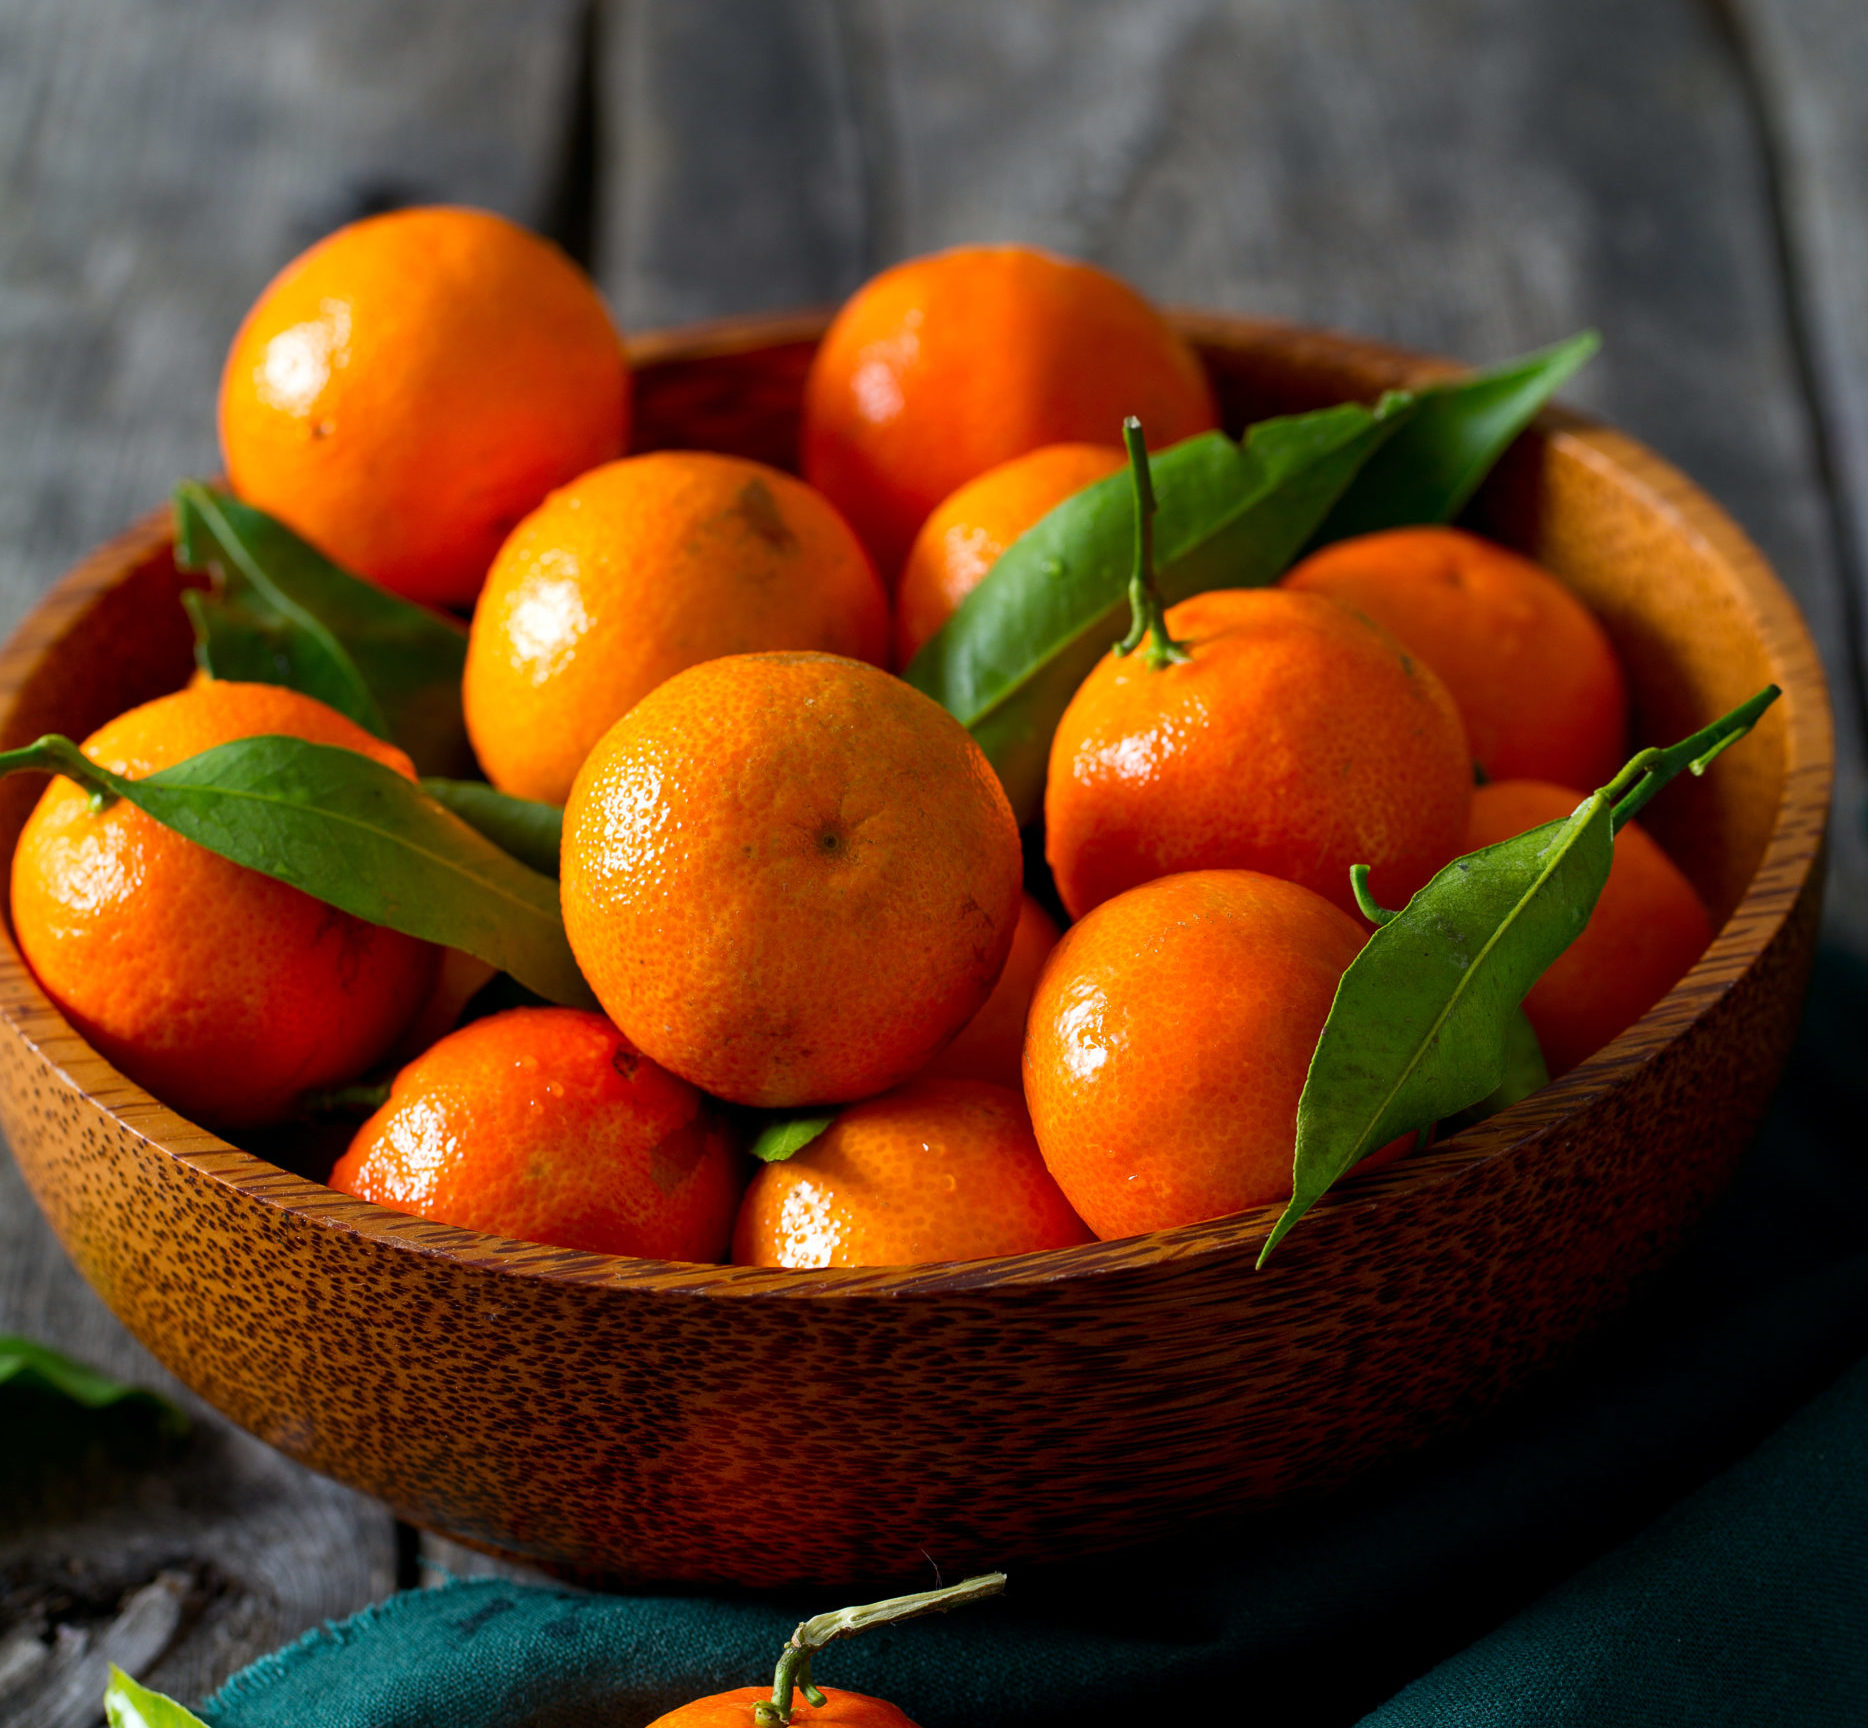 2lb Bagged Clementines   $3.99!